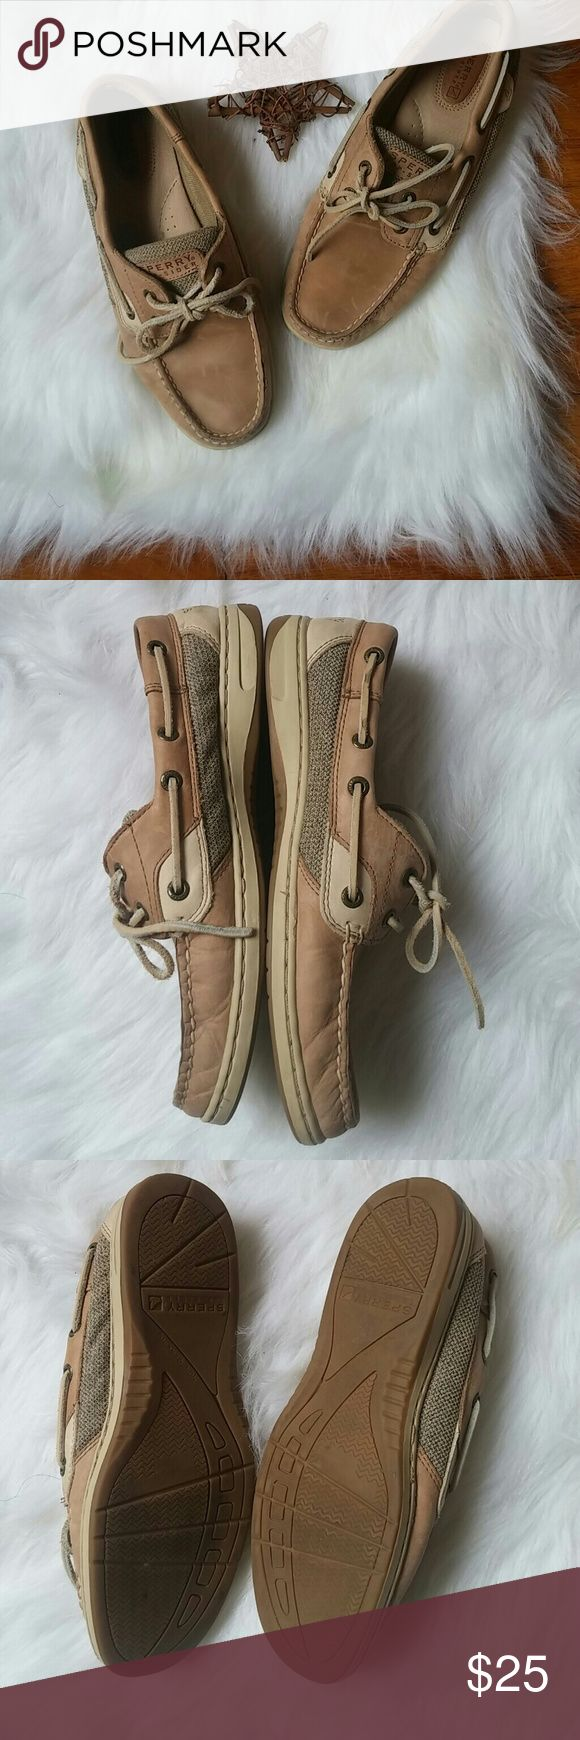 Sperry Boat Shoes 8M Gently and minimally worn - lots of life left! Some light wear to uppers.   Bundle for best deals! Hundreds of items available for discounted bundles! Bundle offers welcome.   Follow on IG: @the.junk.drawer Sperry Top-Sider Shoes Flats & Loafers